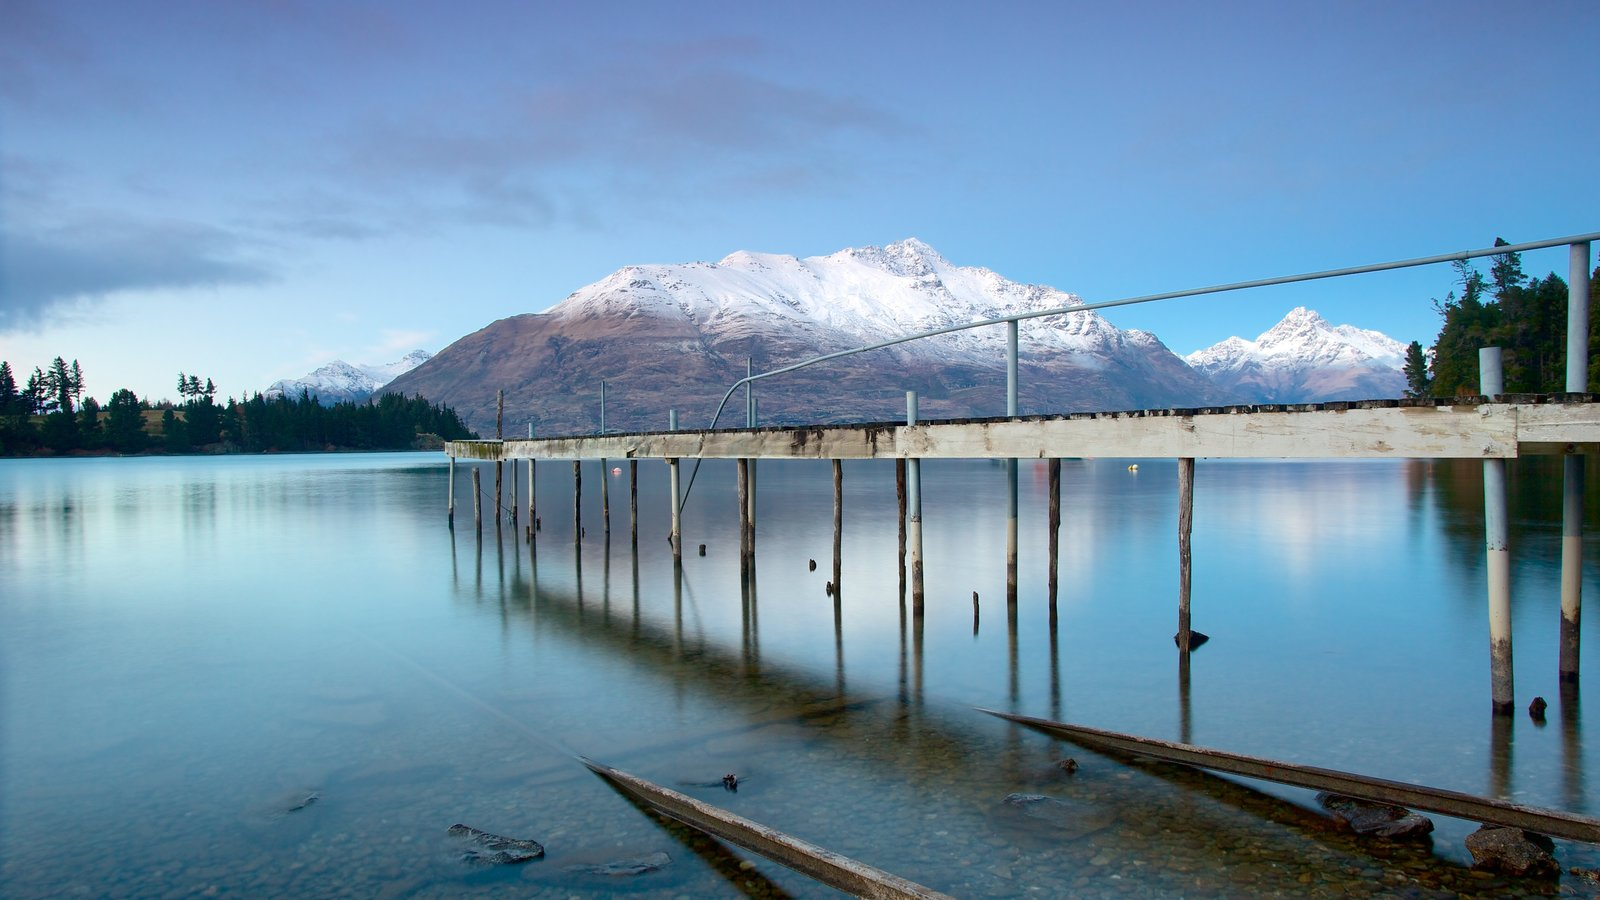 Queenstown which includes landscape views, a lake or waterhole and mountains